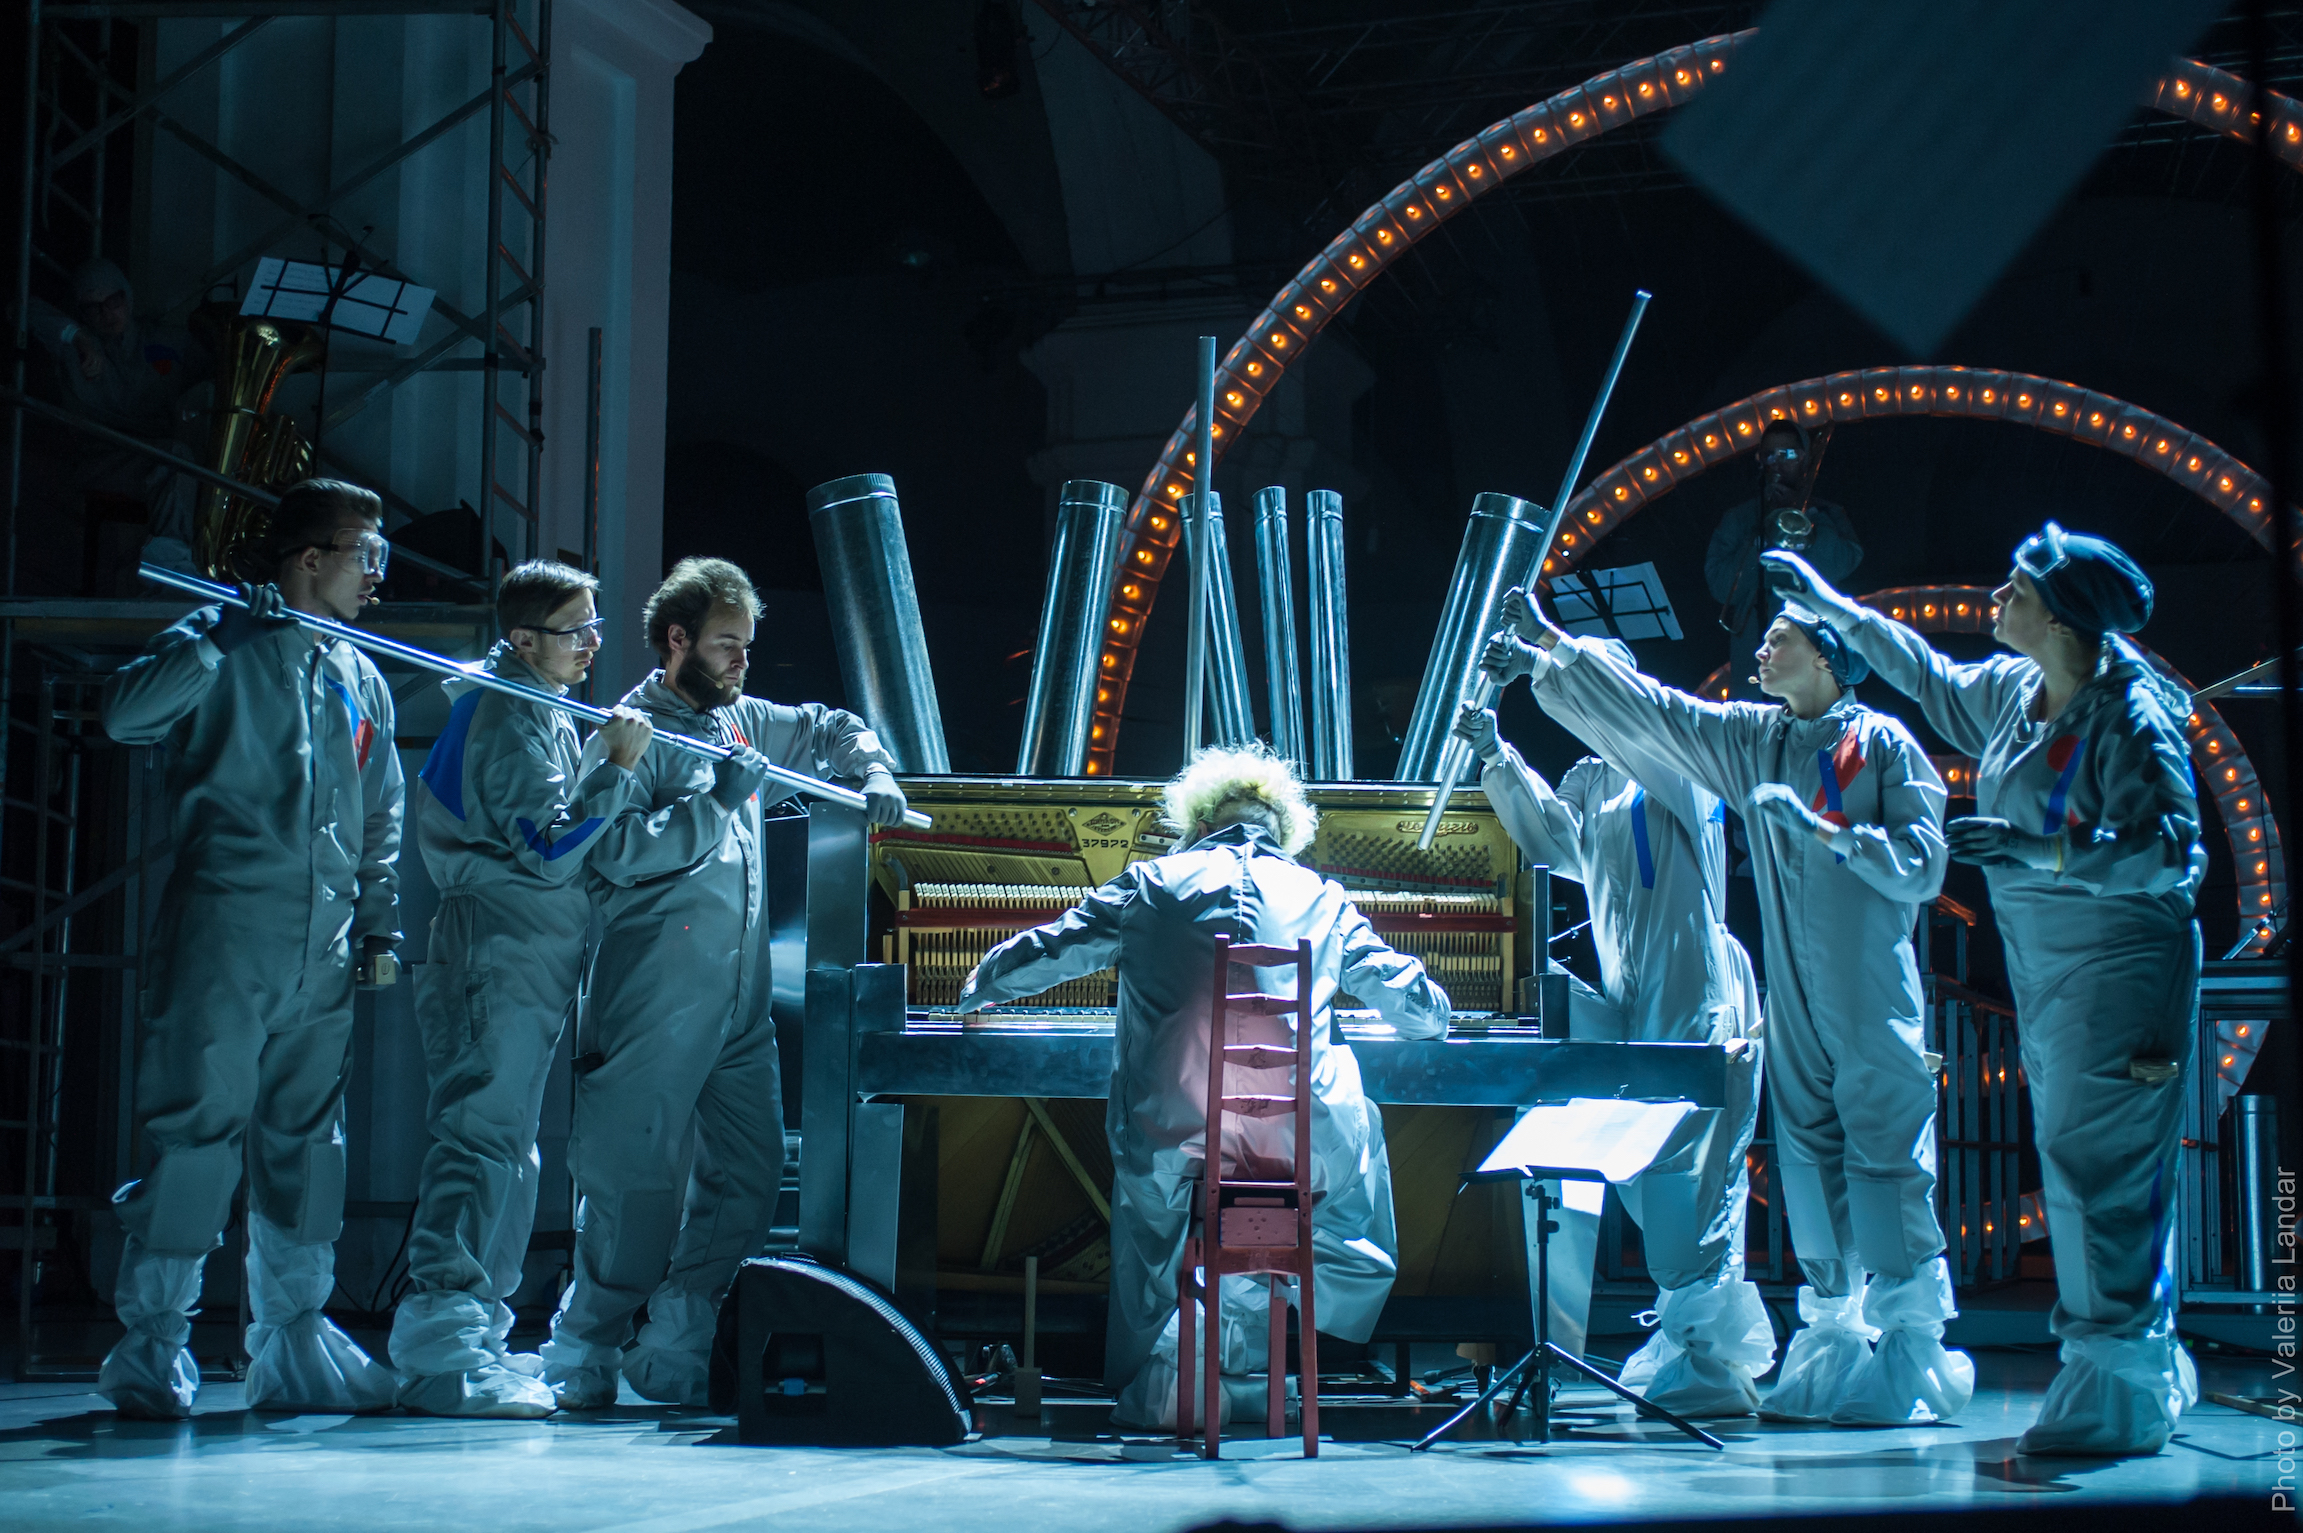 a performer sits at a piano onstage, other performers stand on either side of the piano.